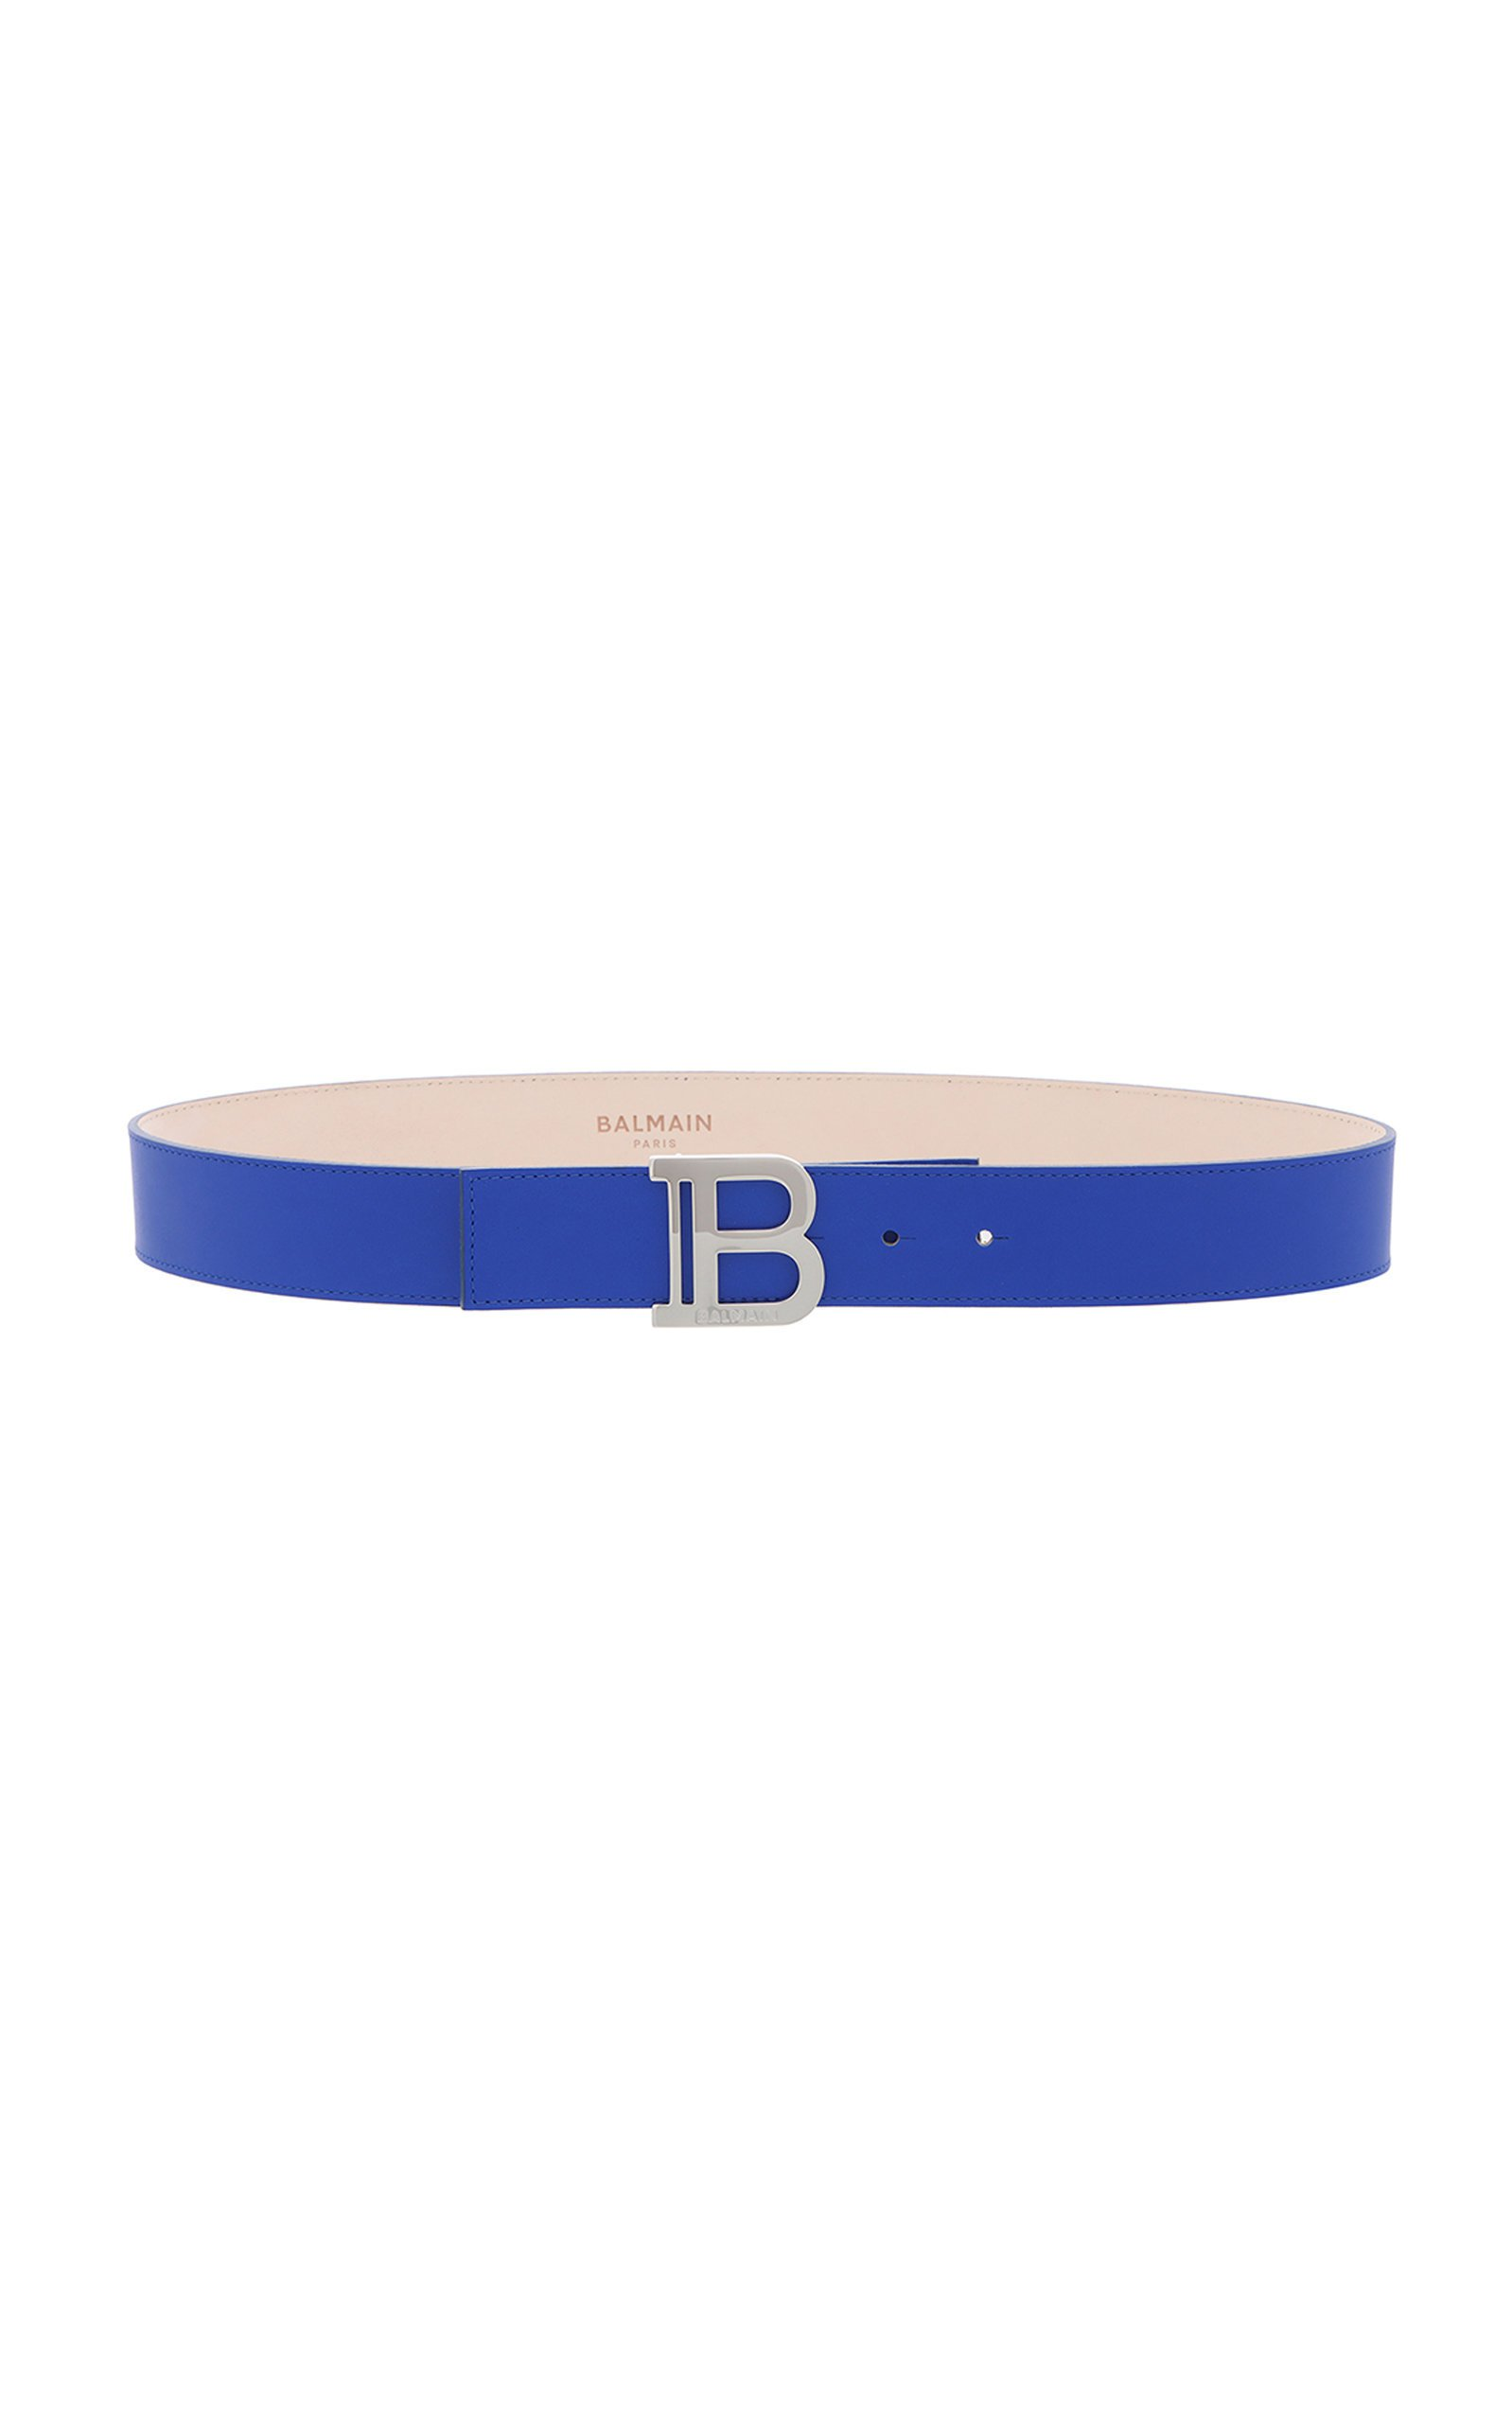 Balmain Signature Leather B-Belt Size: 100 cm